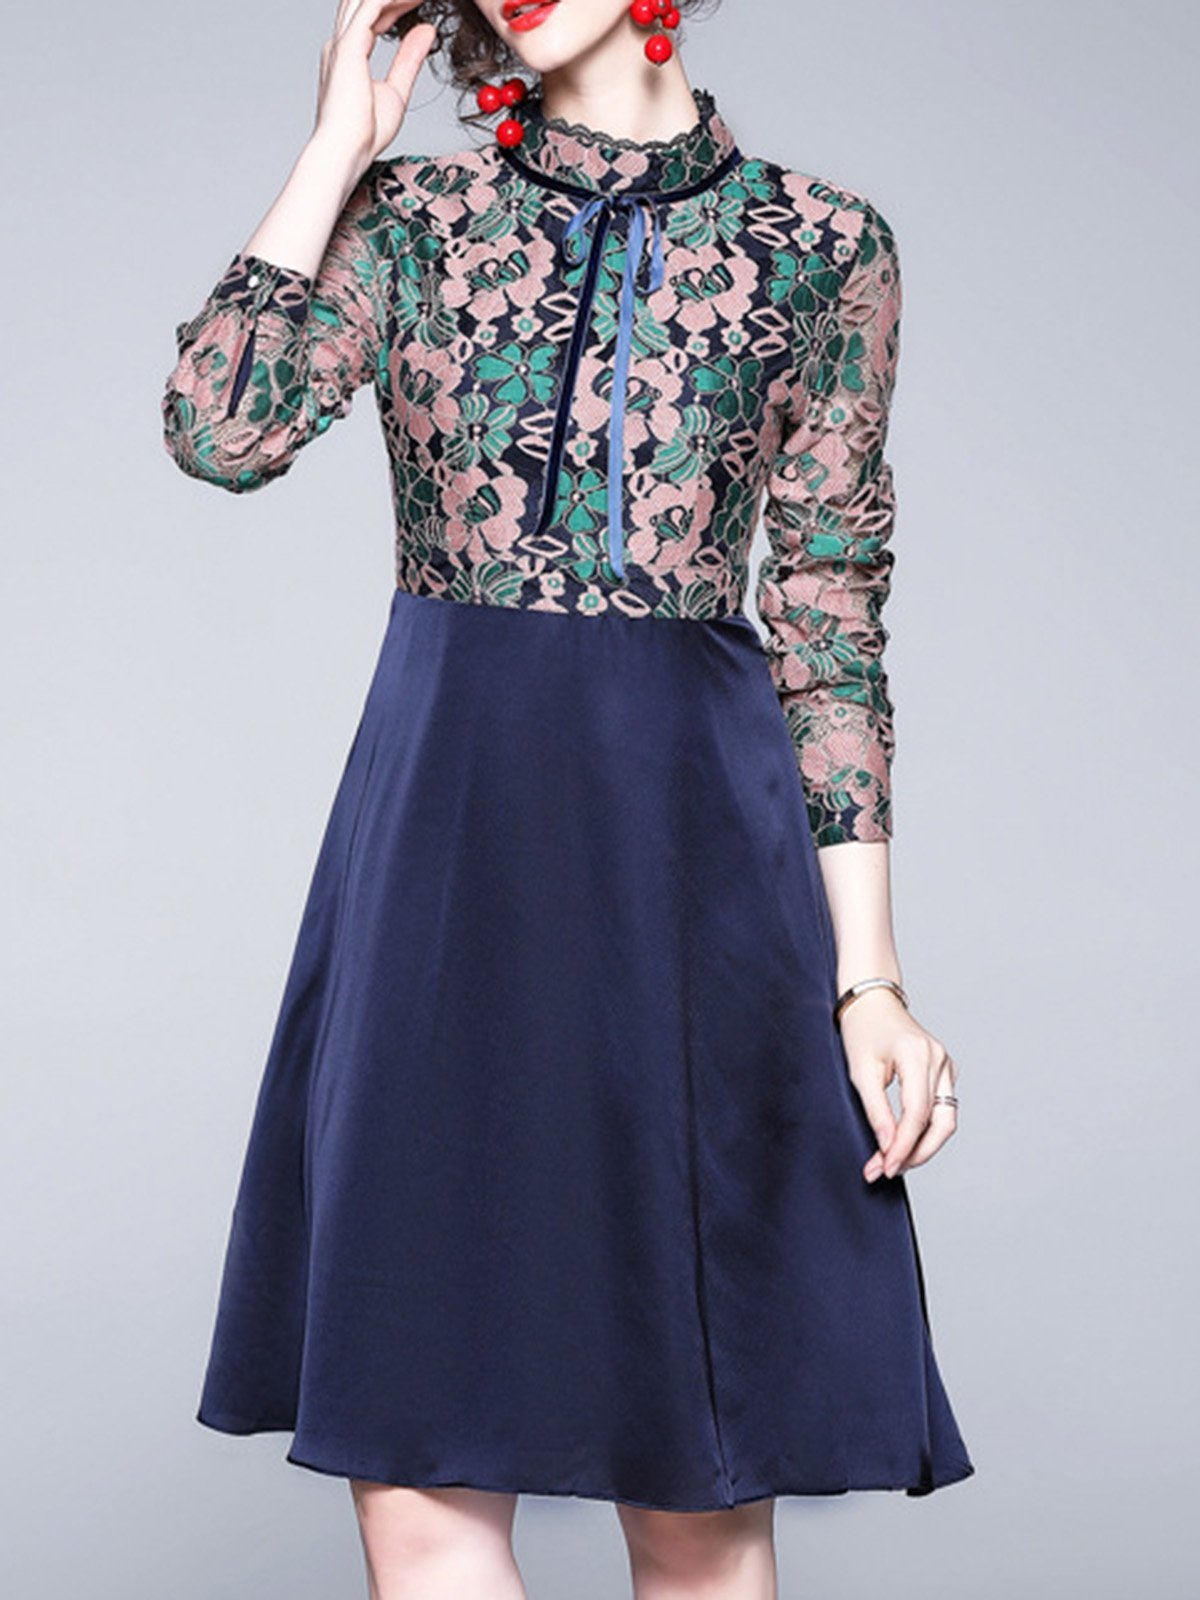 Tie-Neck Floral Going Out Elegant Midi Dress